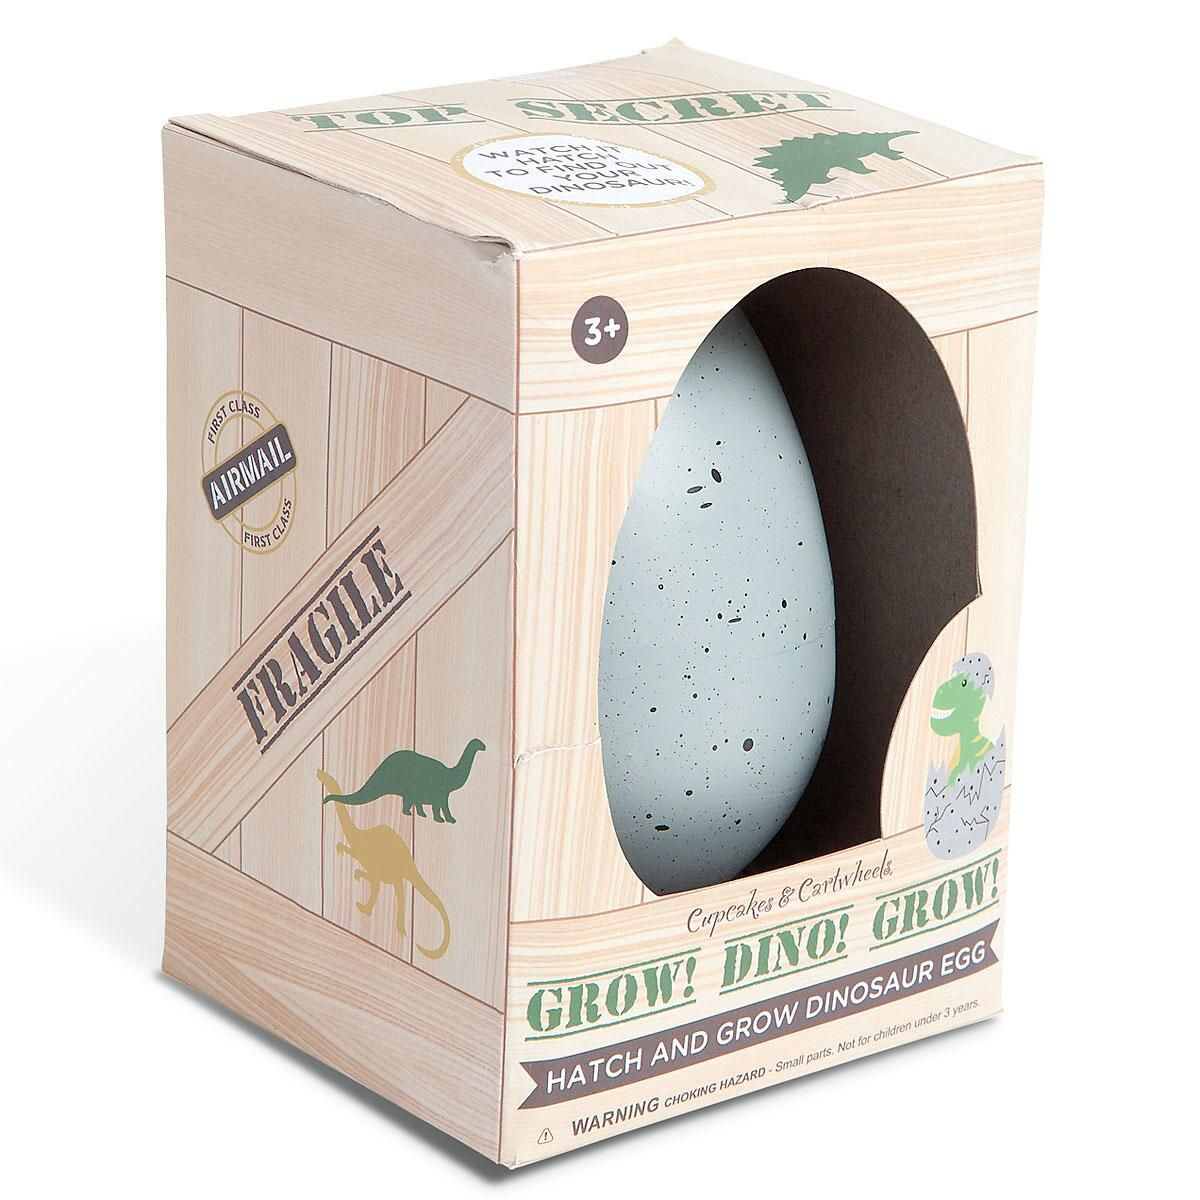 Growing Dinosaur Egg by Two's Company